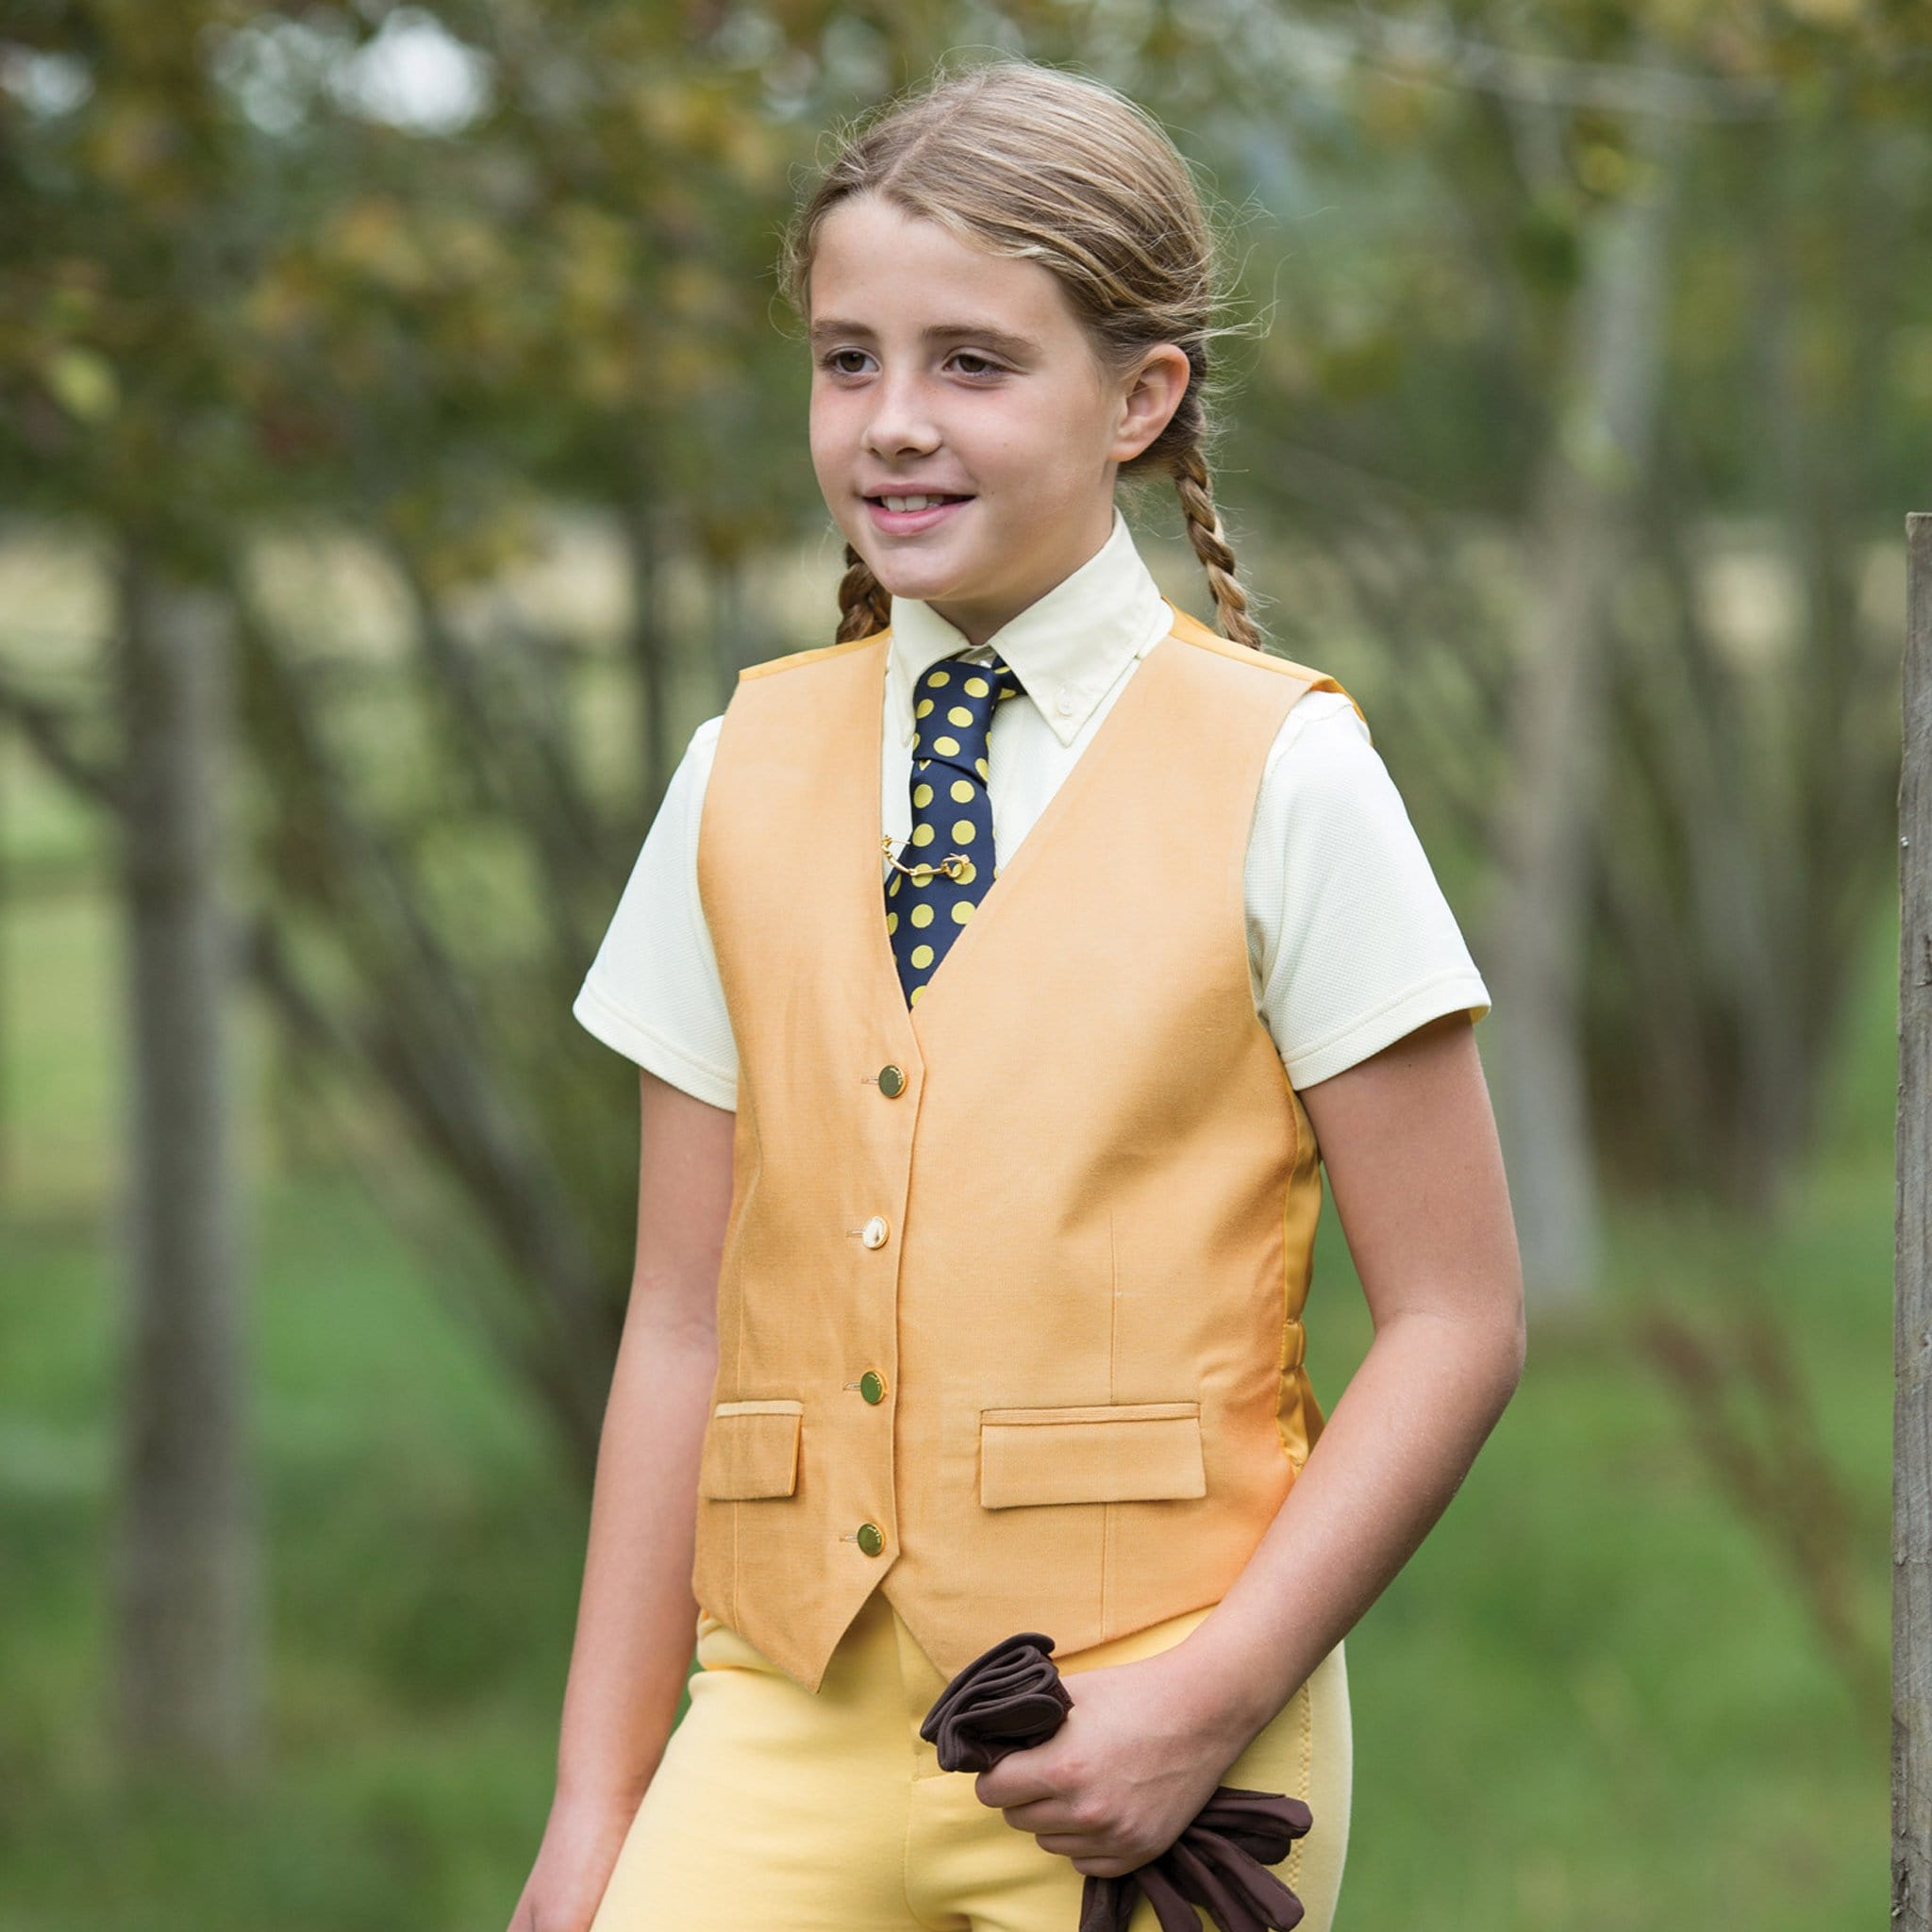 Equetech Junior Jacquard Classic Waistcoat Canary Lifestyle CJW